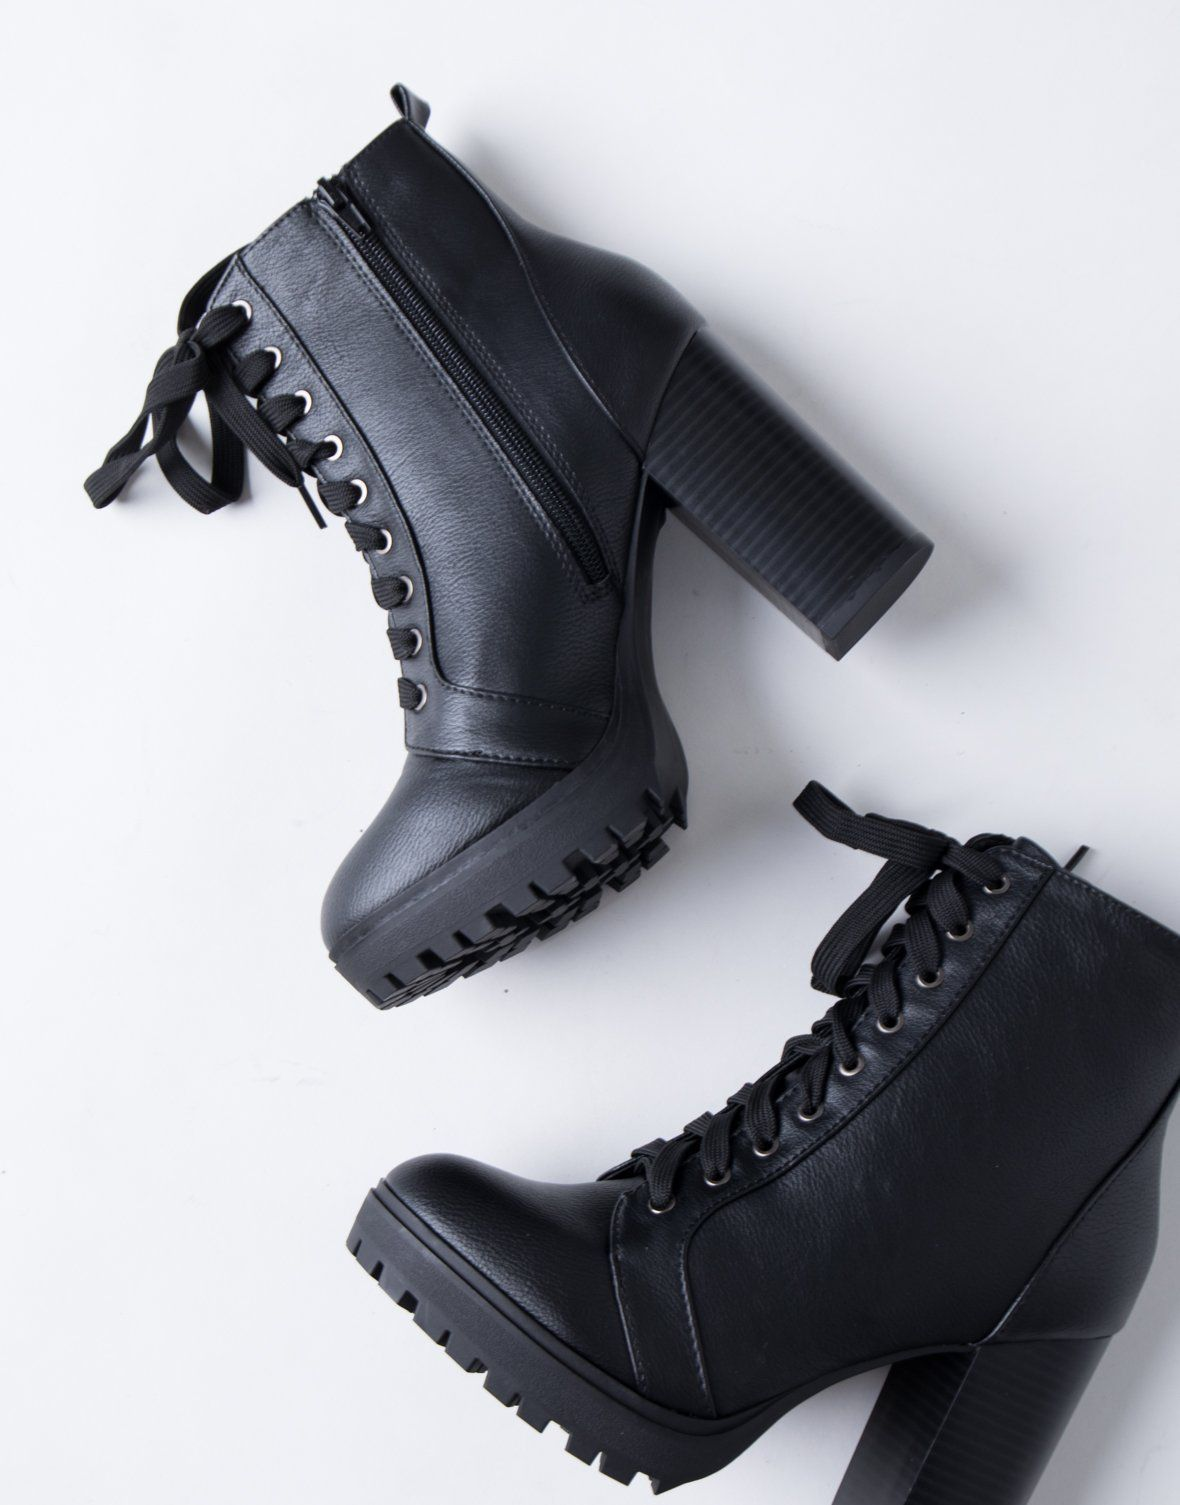 d8eb7be30c Walk the Line Boots – 2020AVE combat boots, booties, black boots, lace up  boots, high heel booties, heels, fall fashion, fall wardrobe, fashion  essentials, ...